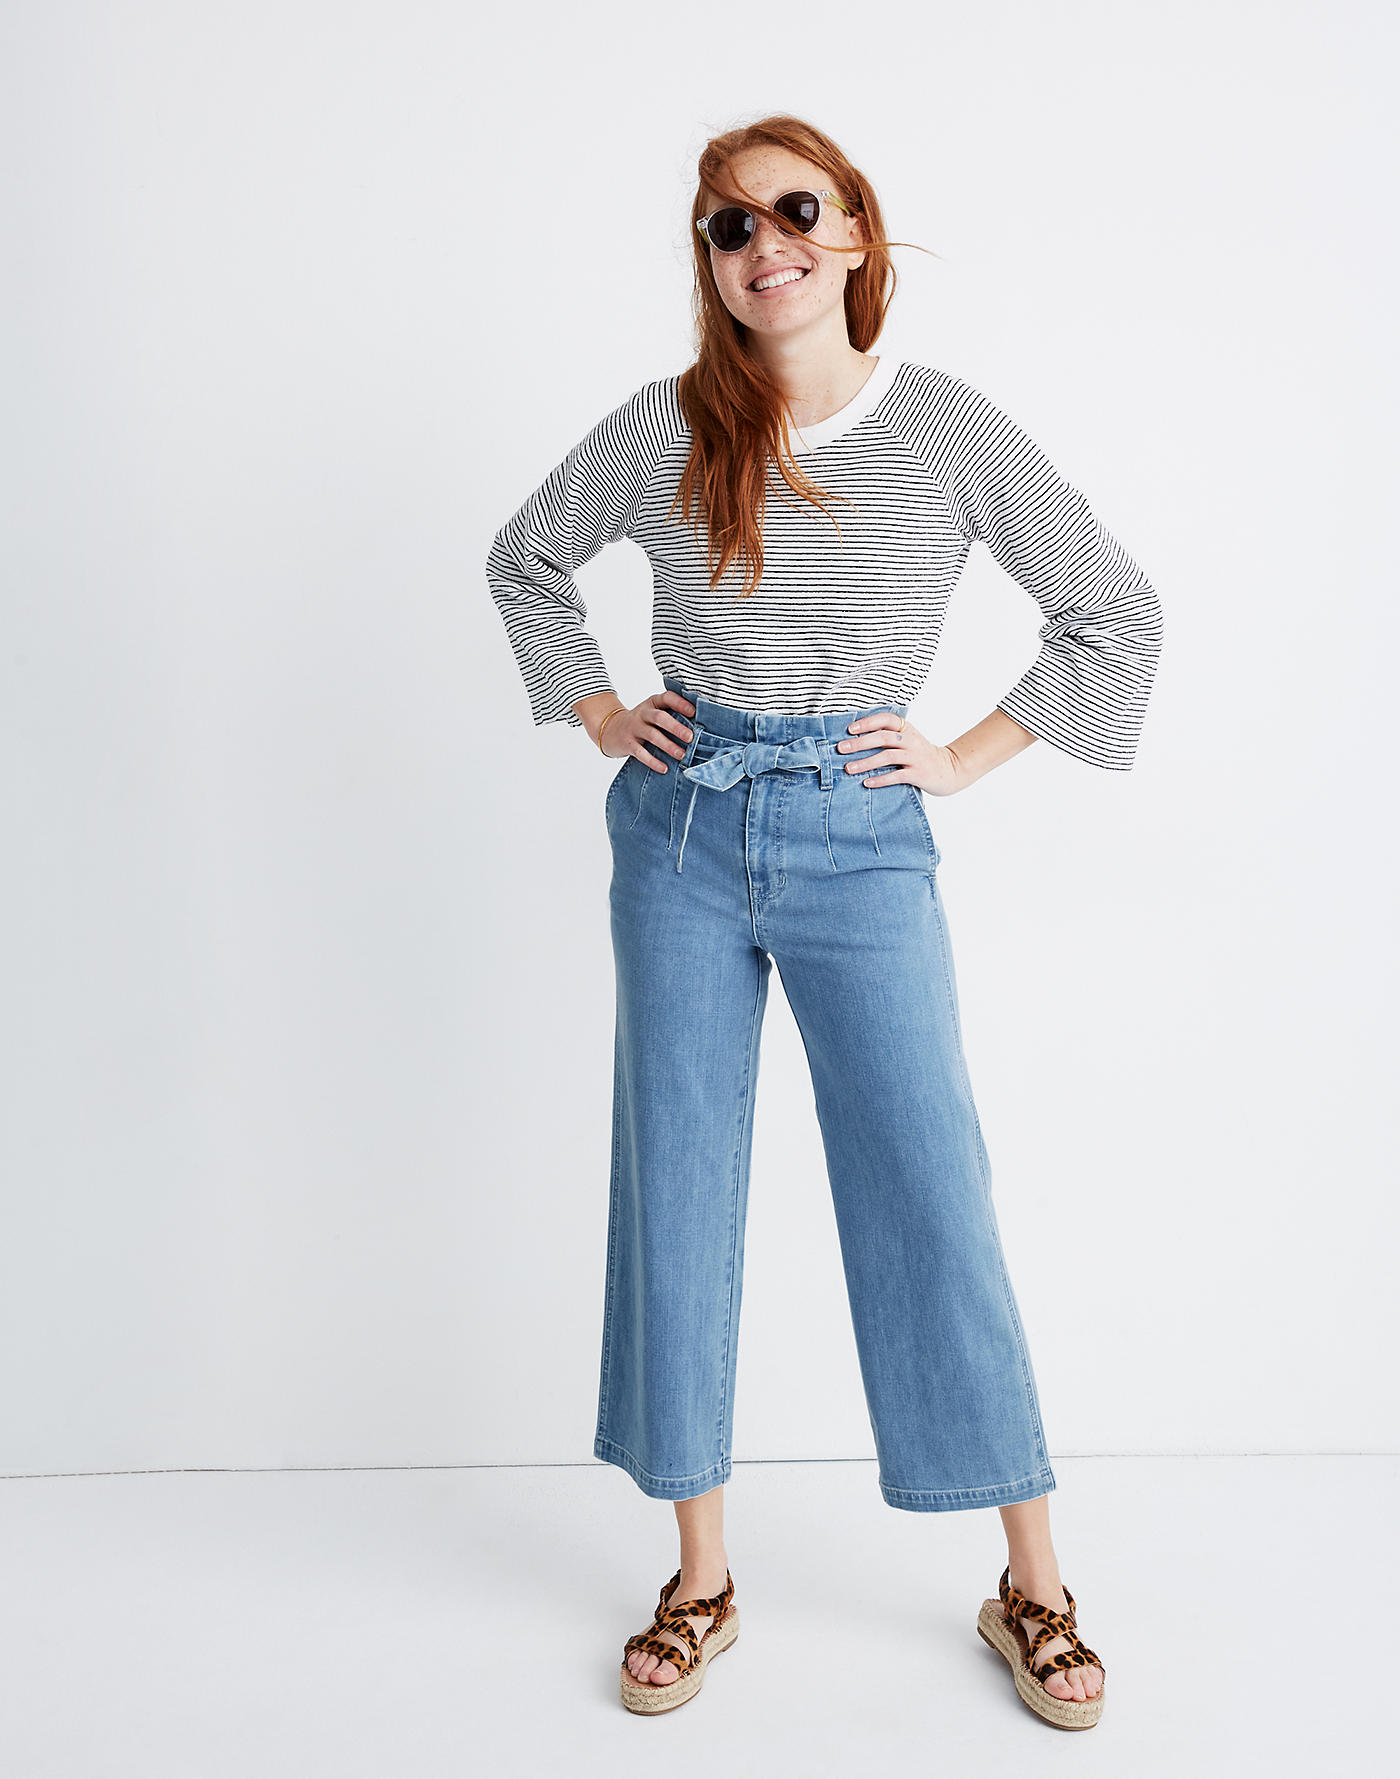 Madewell Paperbag Crop Jeans in Winsford Wash